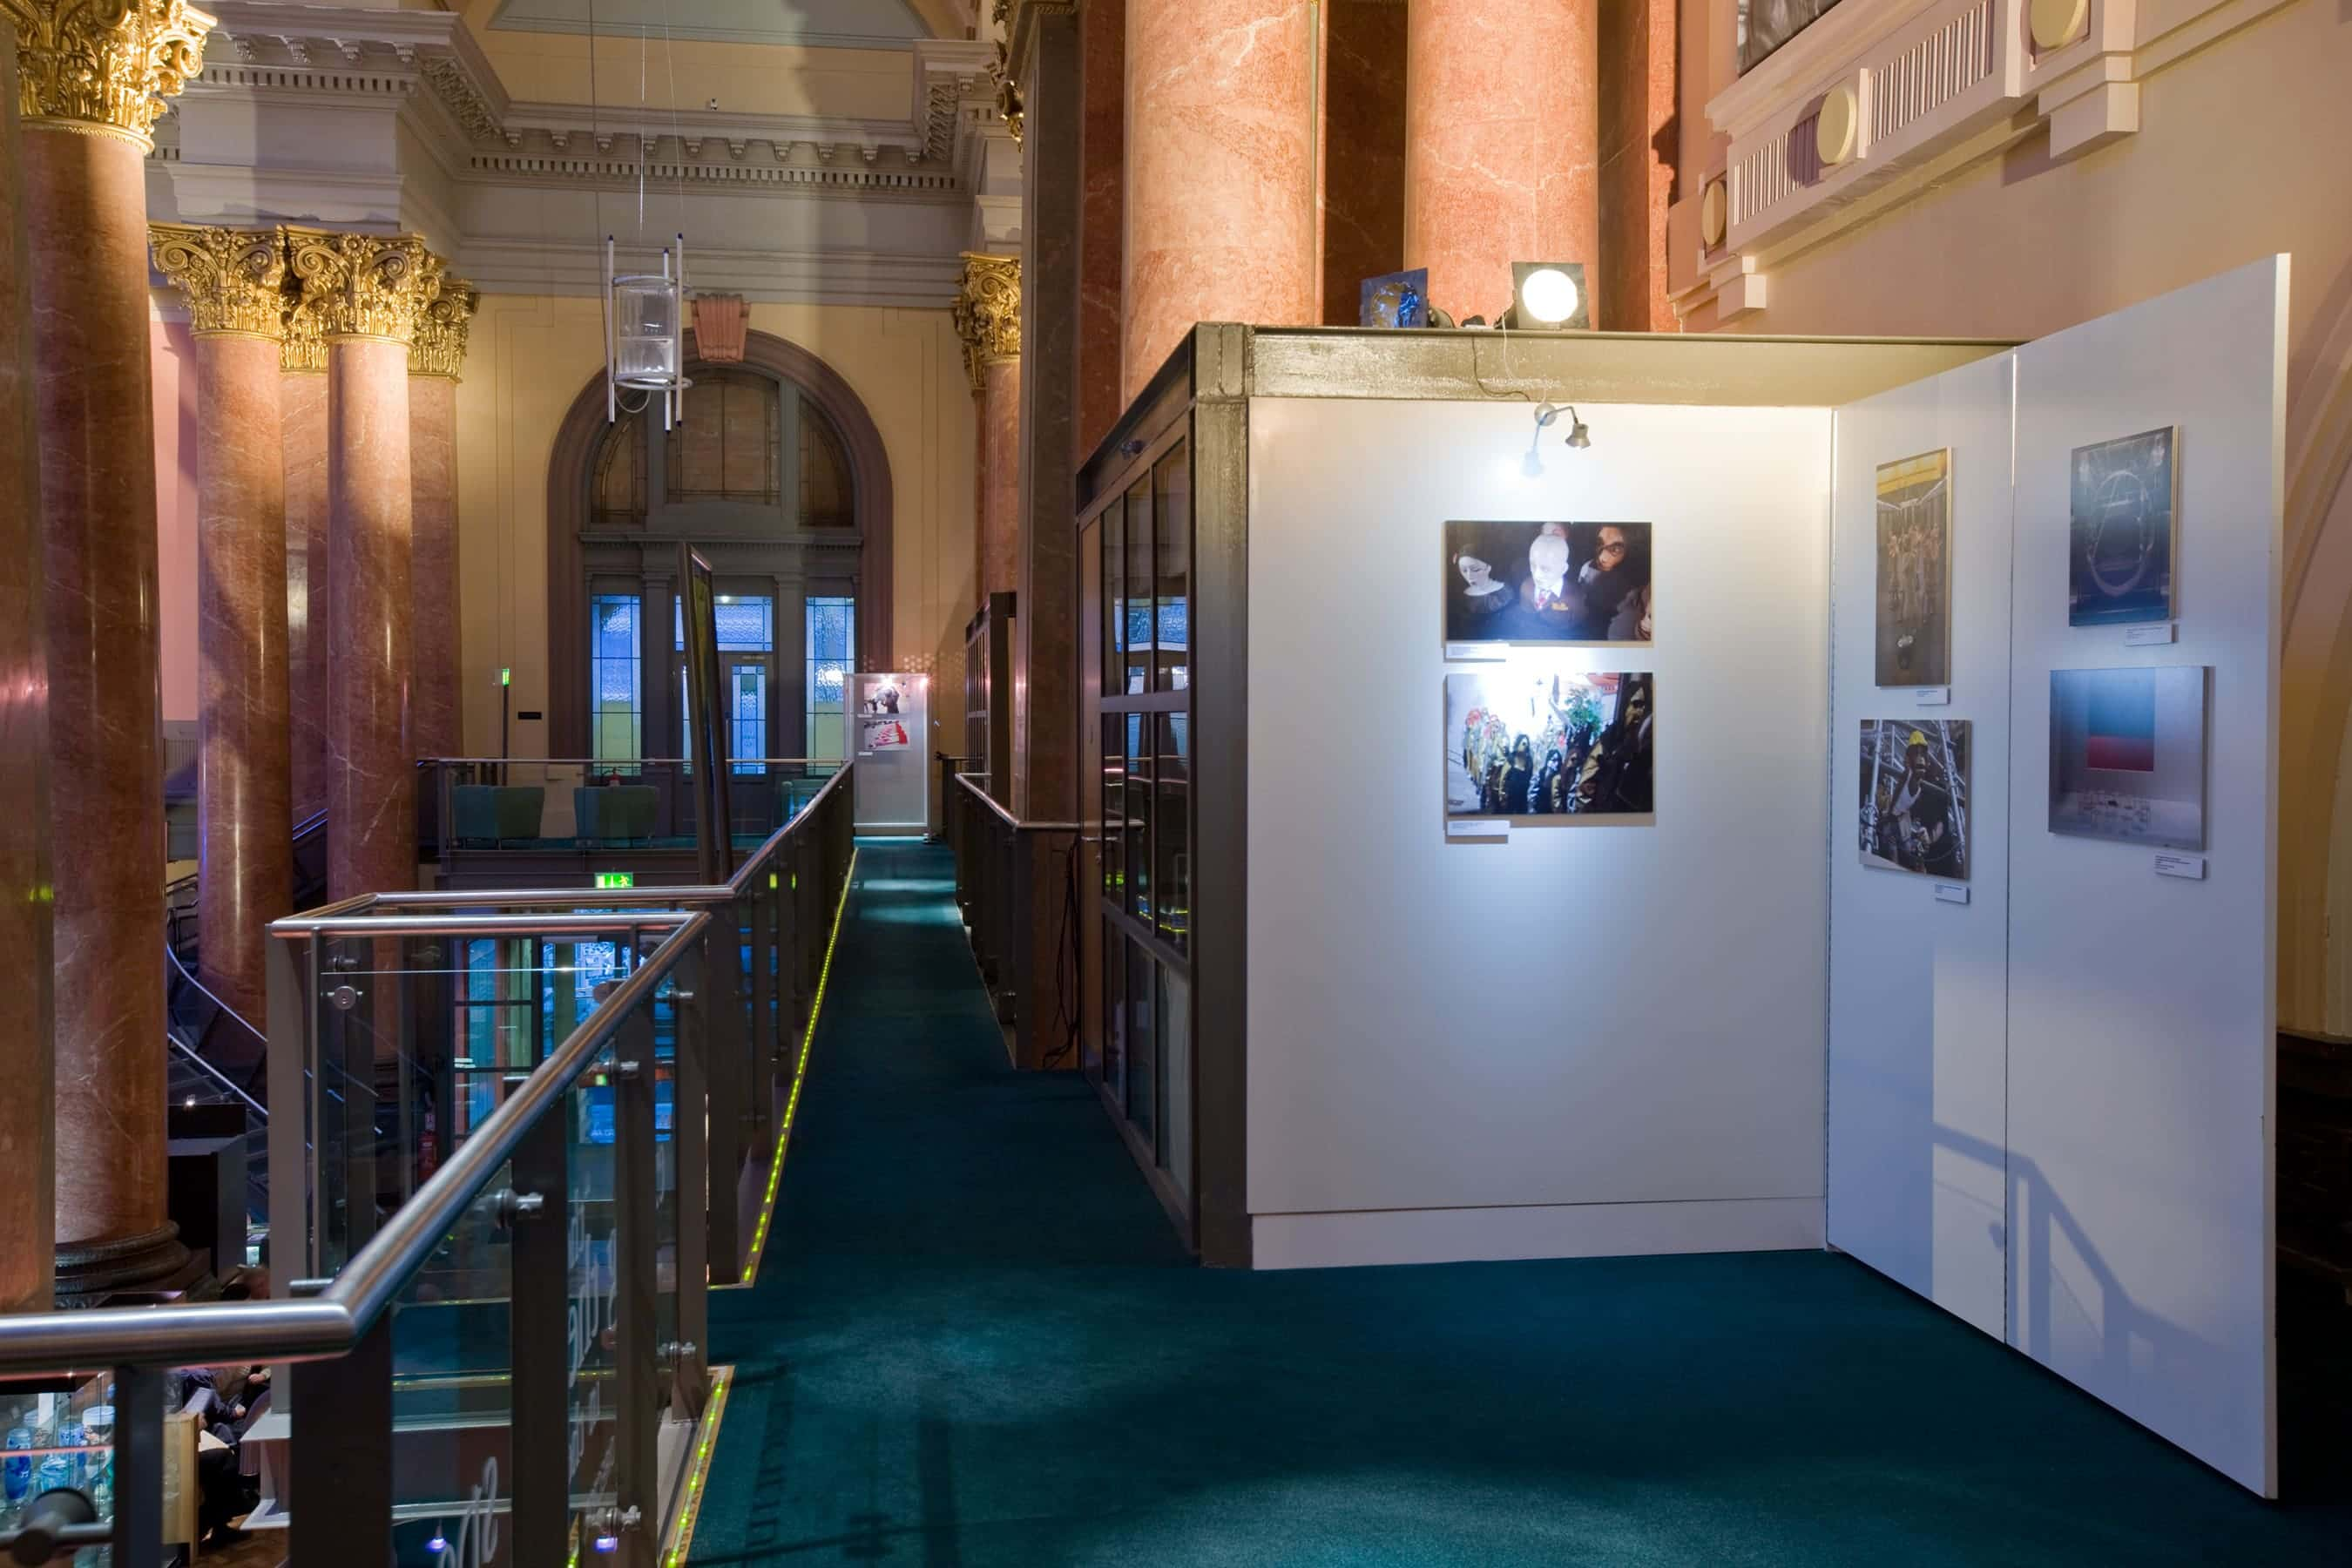 The Mezzanine Gallery | Our Building & Spaces | About Us | Royal ...